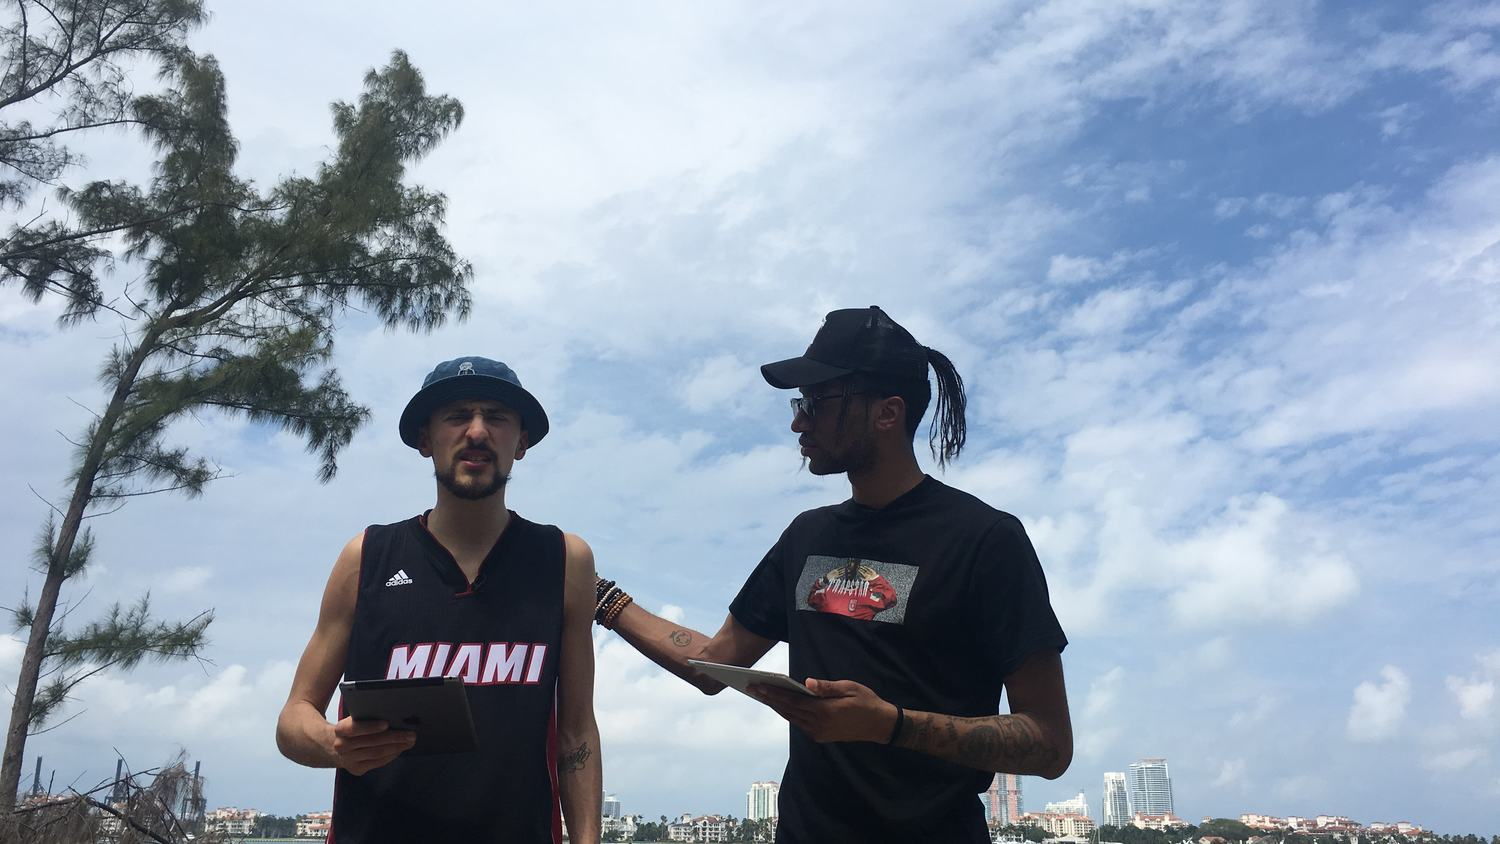 They're in Miami B**ch! | Have A Nice Tour